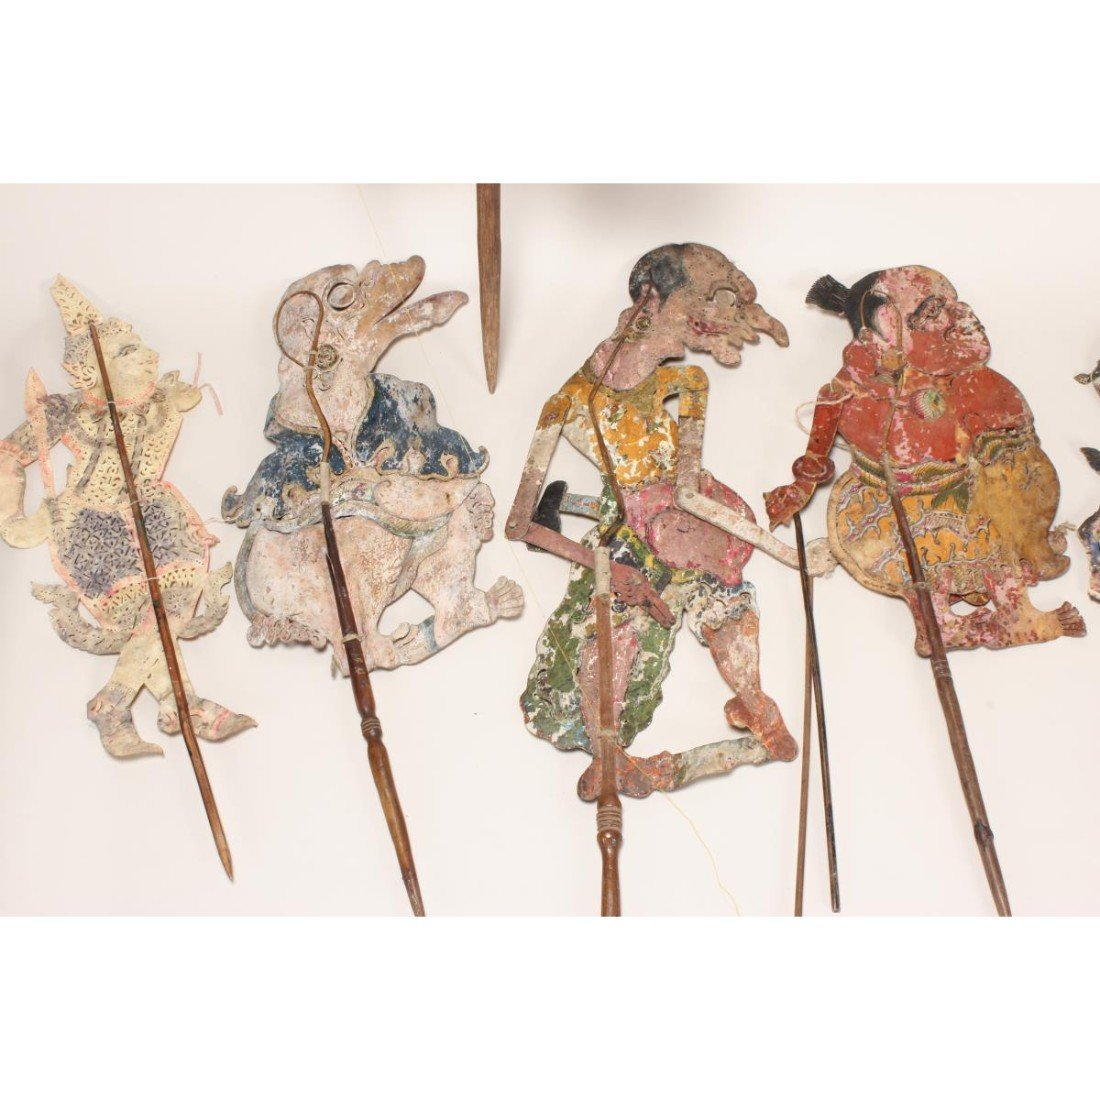 Group of Six Indonesian Shadow Puppets, - 2